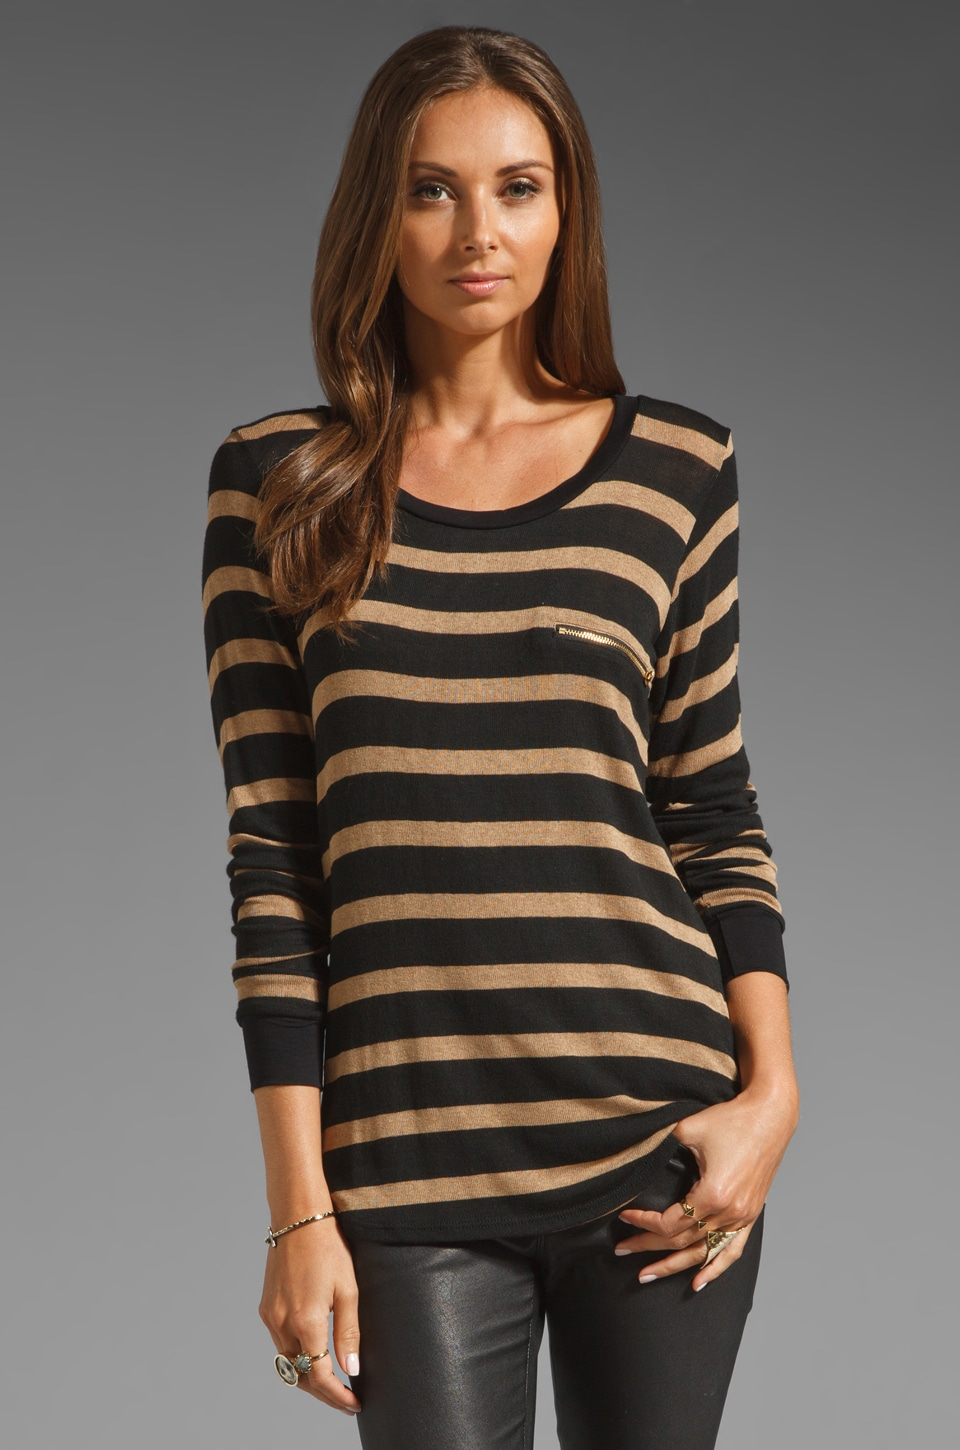 LNA Spencer Striped Sweater in Oat/Black Stripes